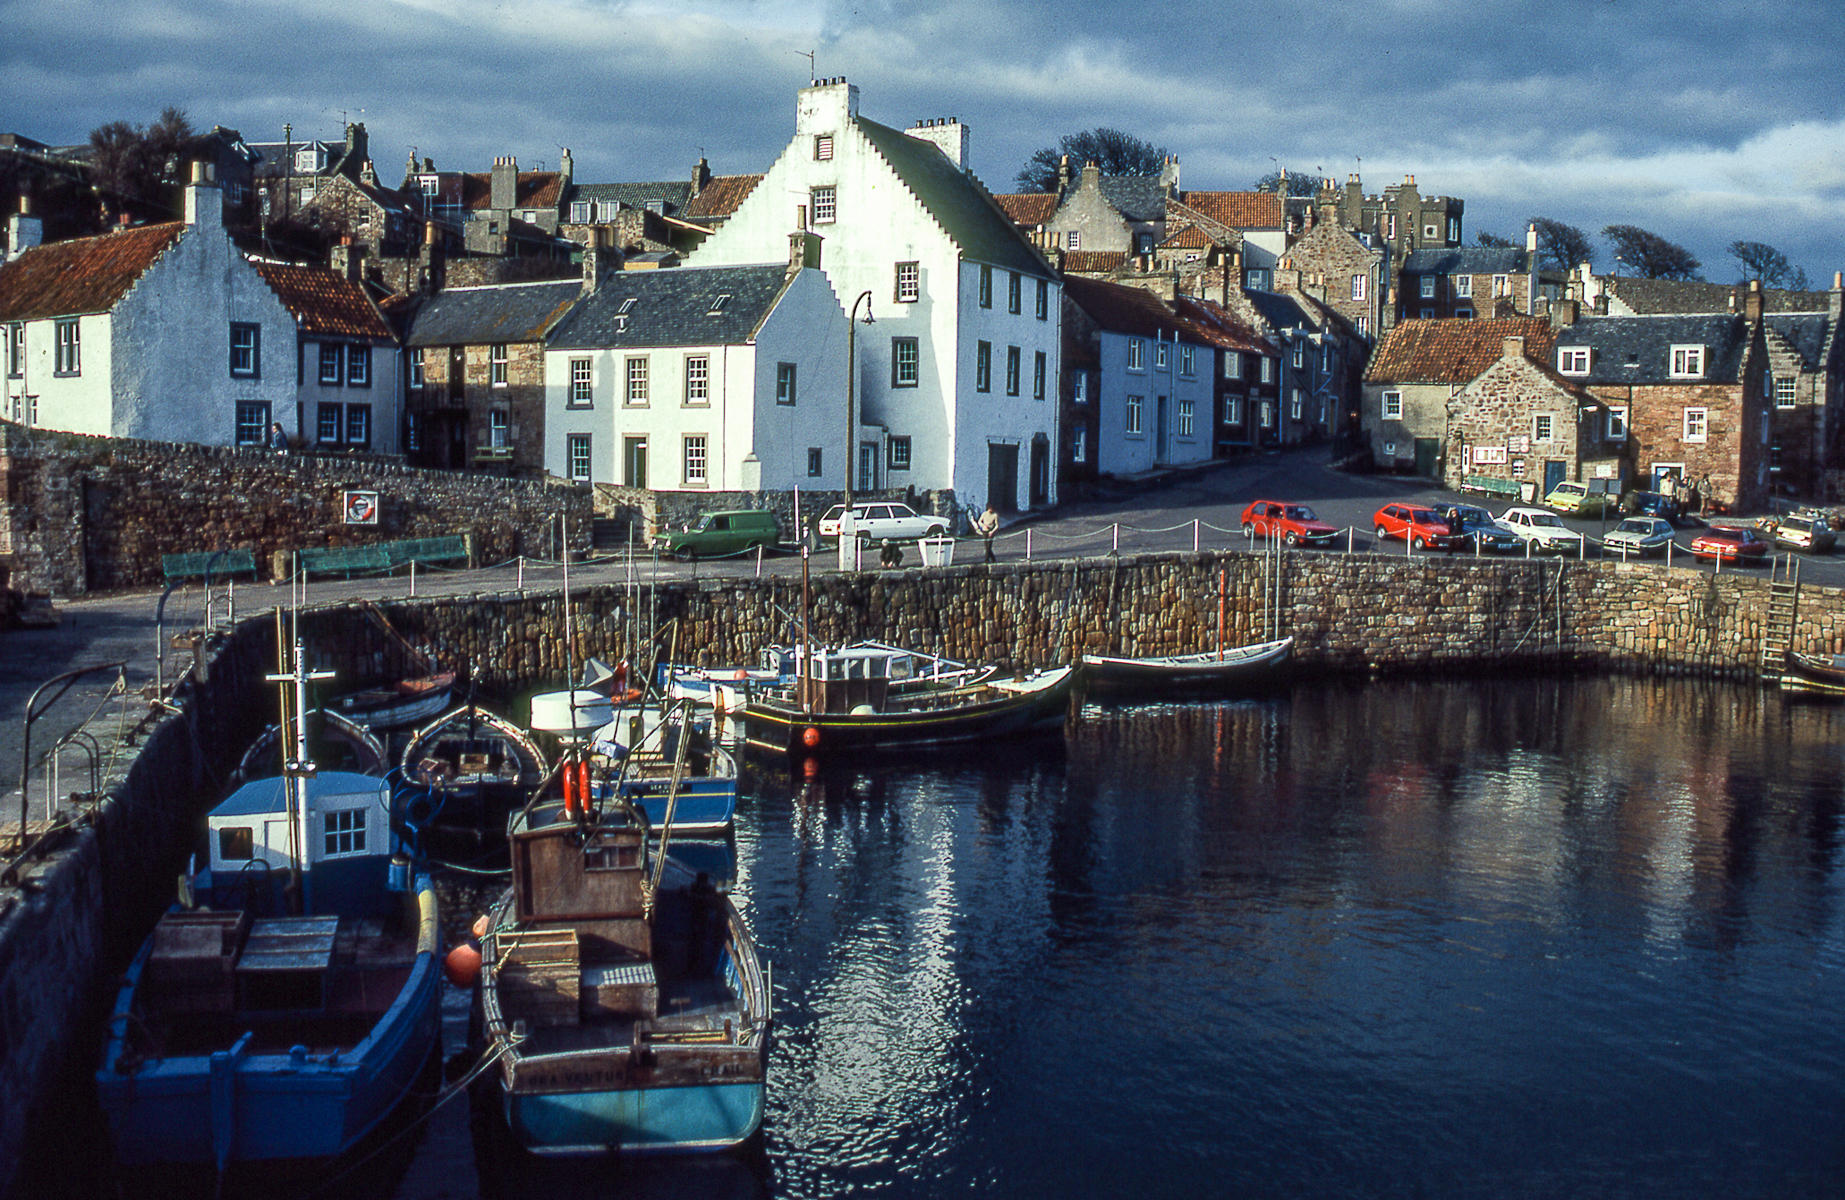 Arbroath, Scotland : street & stories : TIMOTHY FLOYD PHOTOGRAPHER, NATURE PHOTOGRAPHY, PHOTO ESSAYS, PHOTOJOURNALISM